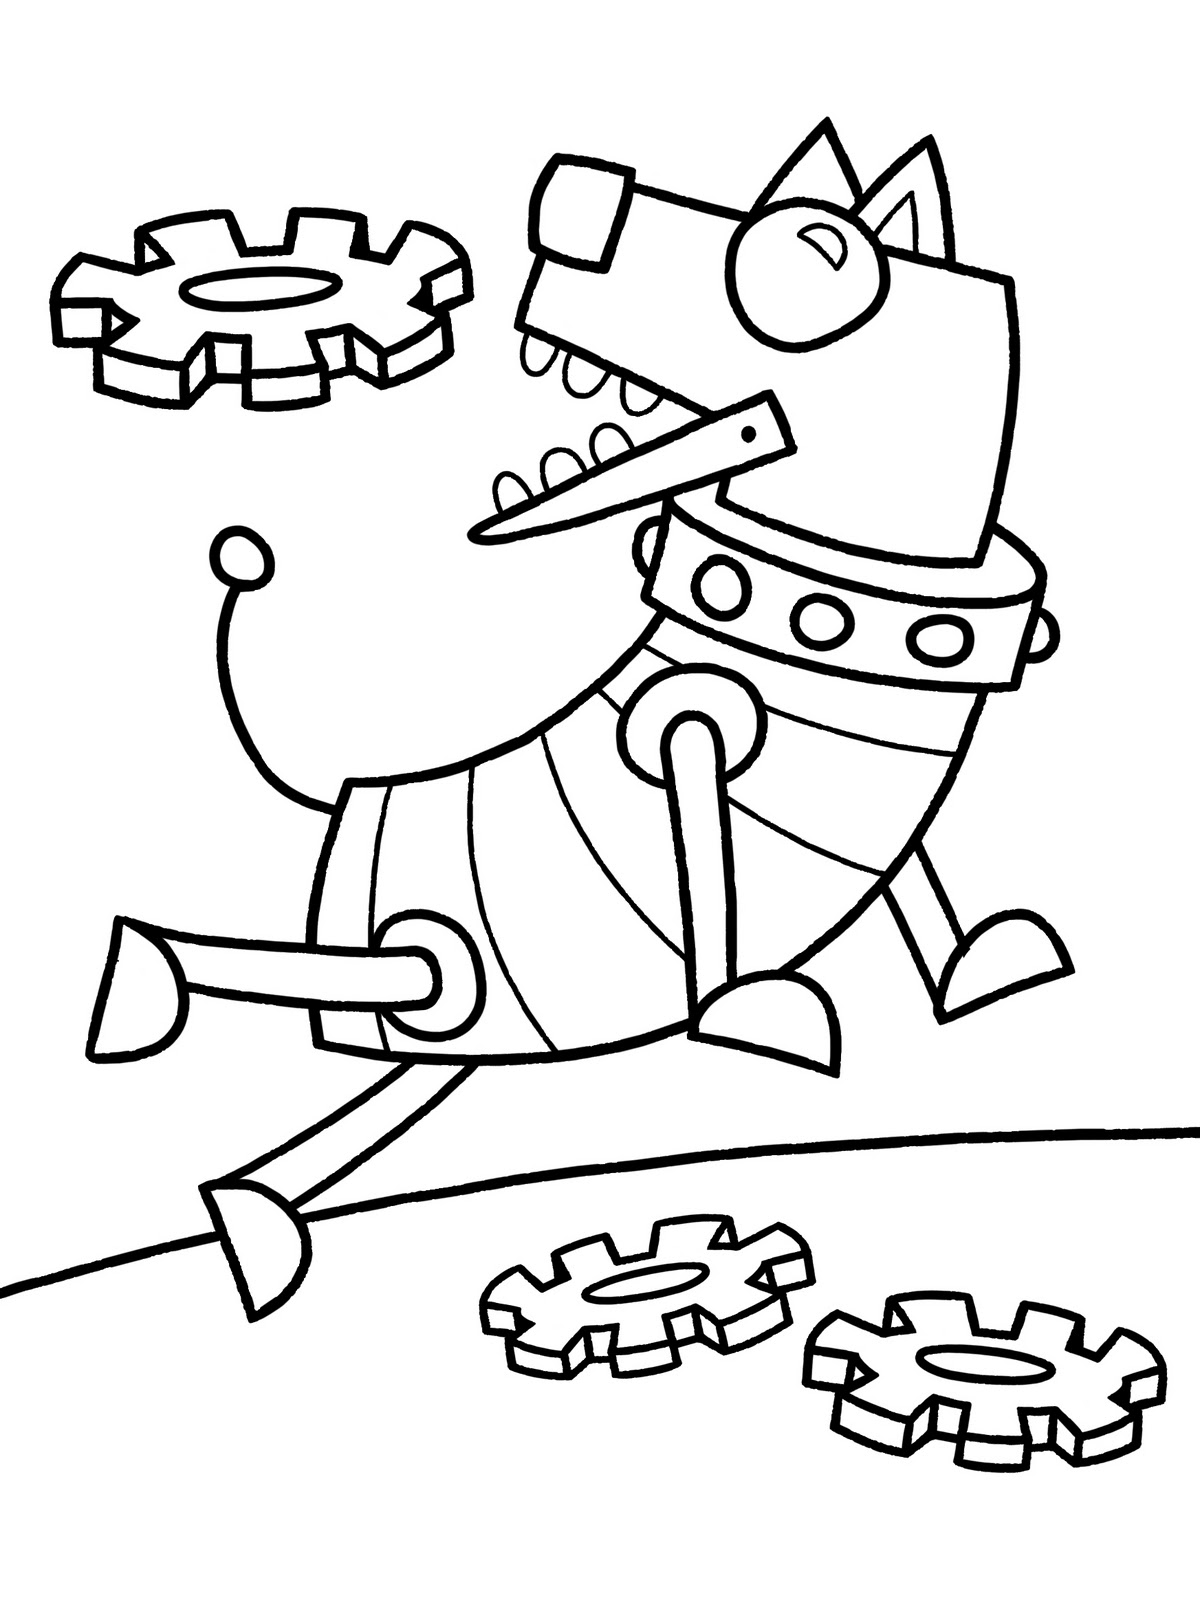 Free zebra coloring pages to print - Free Zebra Coloring Pages Print 7 Zebra Coloring Pages